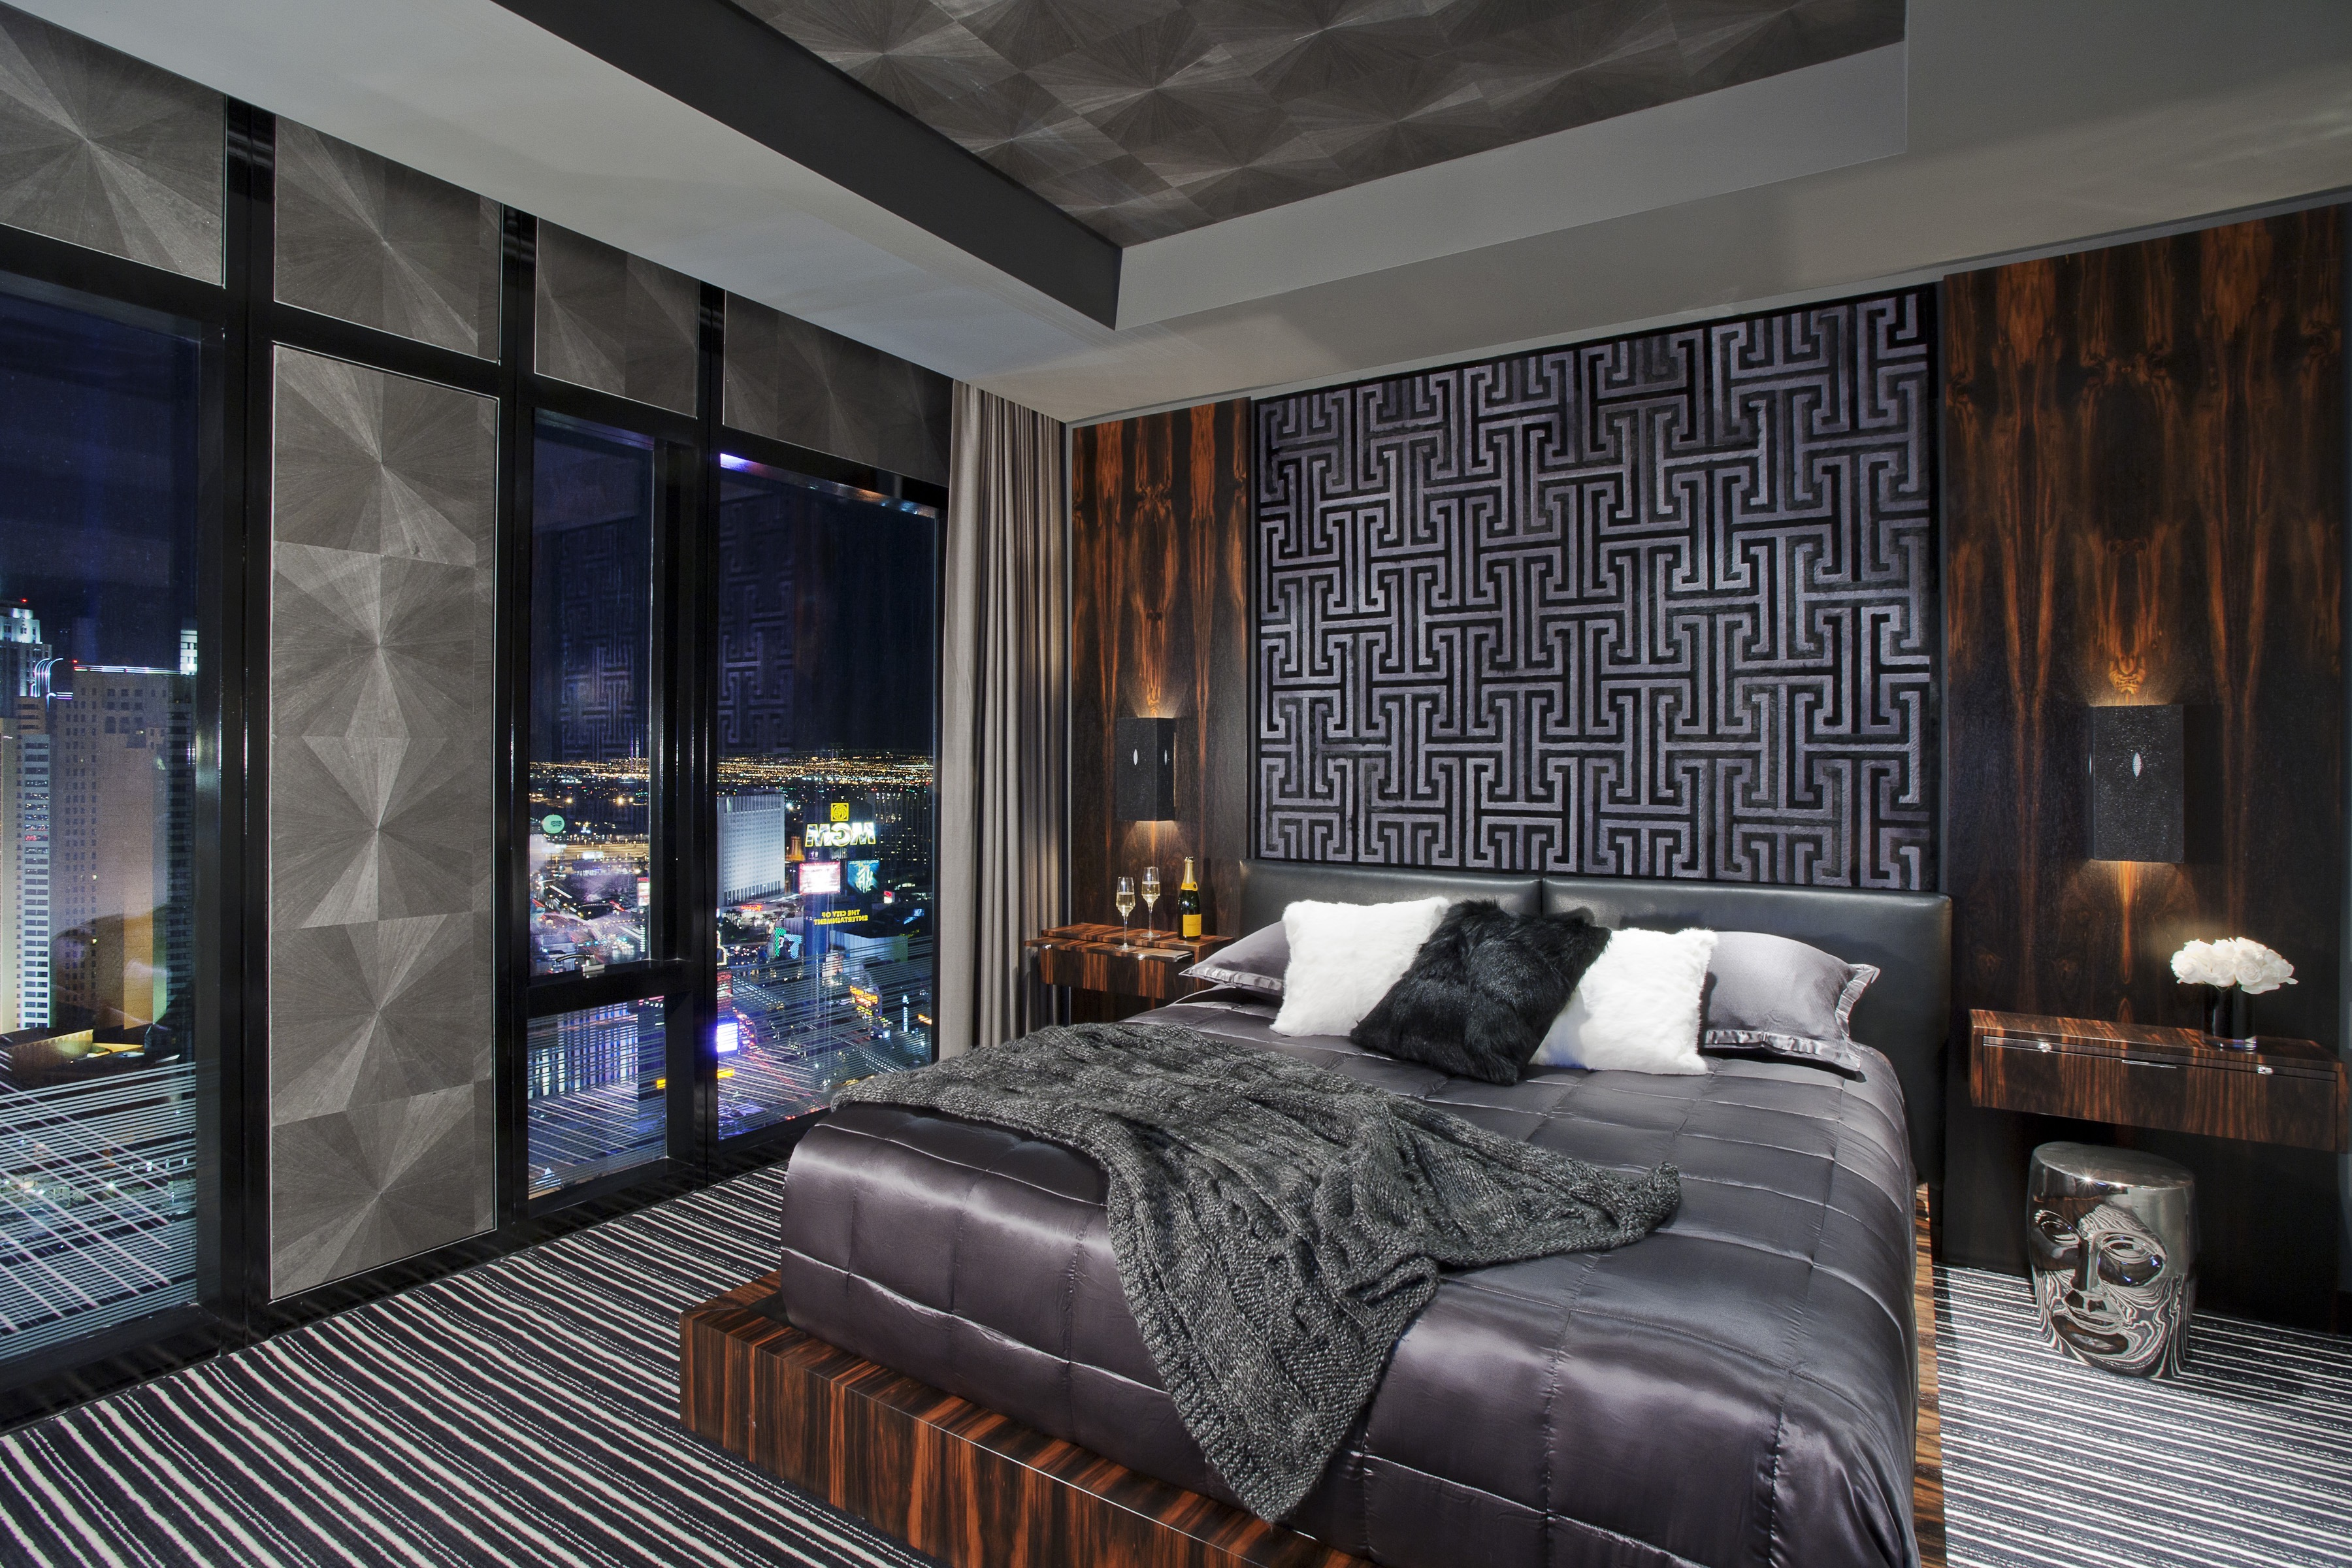 Contemporary Gothic Bedroom With Metallic Finishes And Striped Carpet (Image 4 of 11)